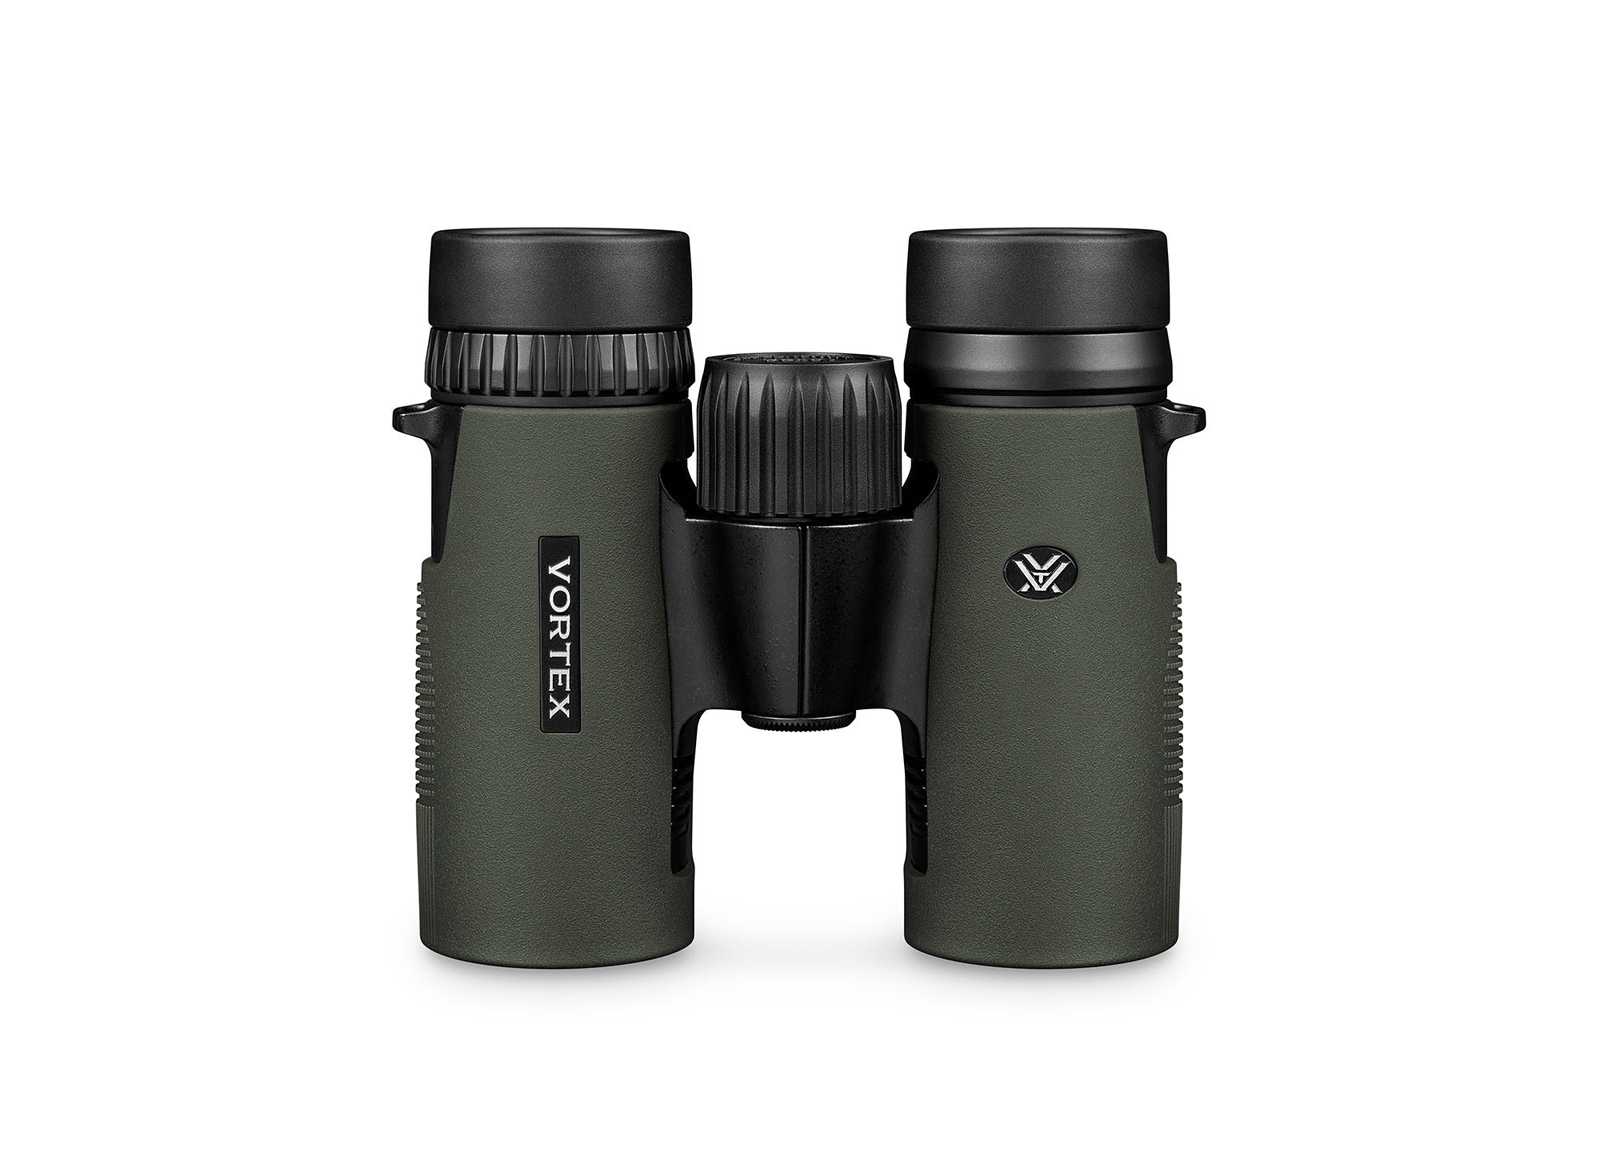 VORTEX OPTICS BINOCOLO DIAMONDBACK HD 8x32 DB-212